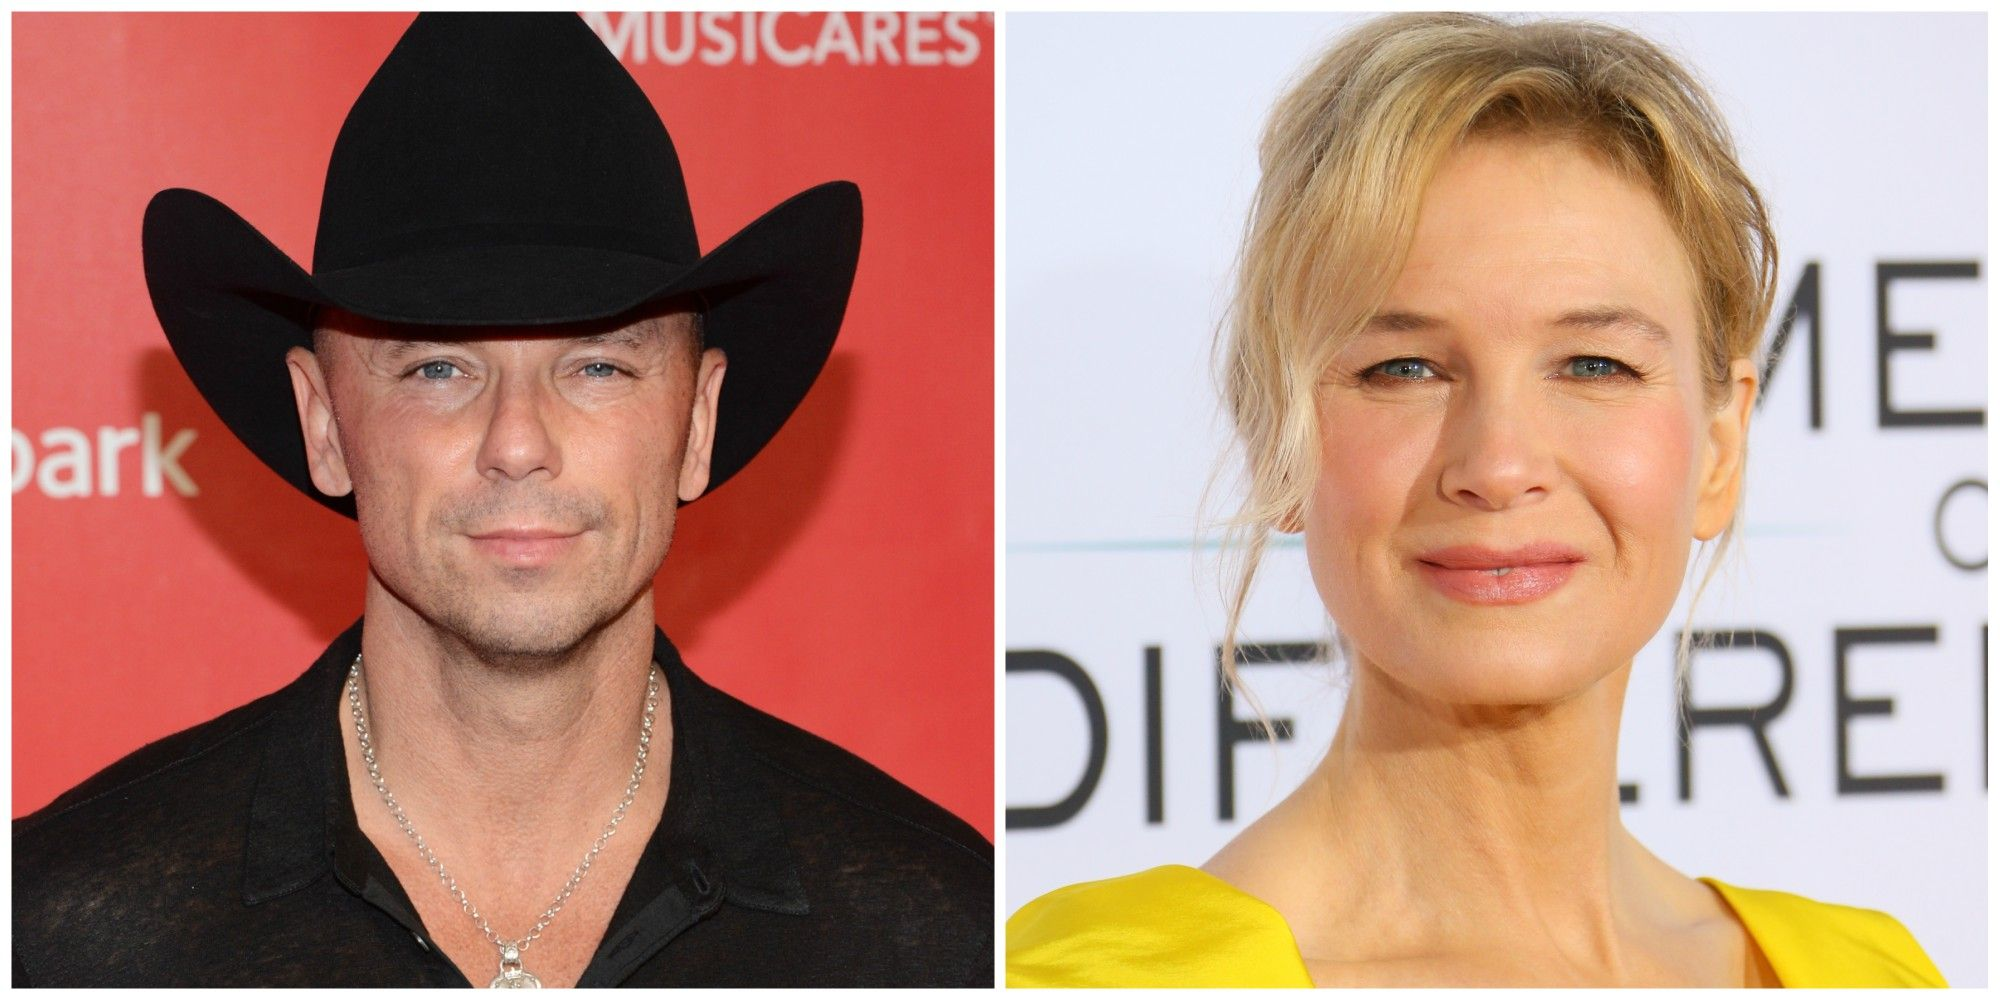 Kenny chesney dating right now